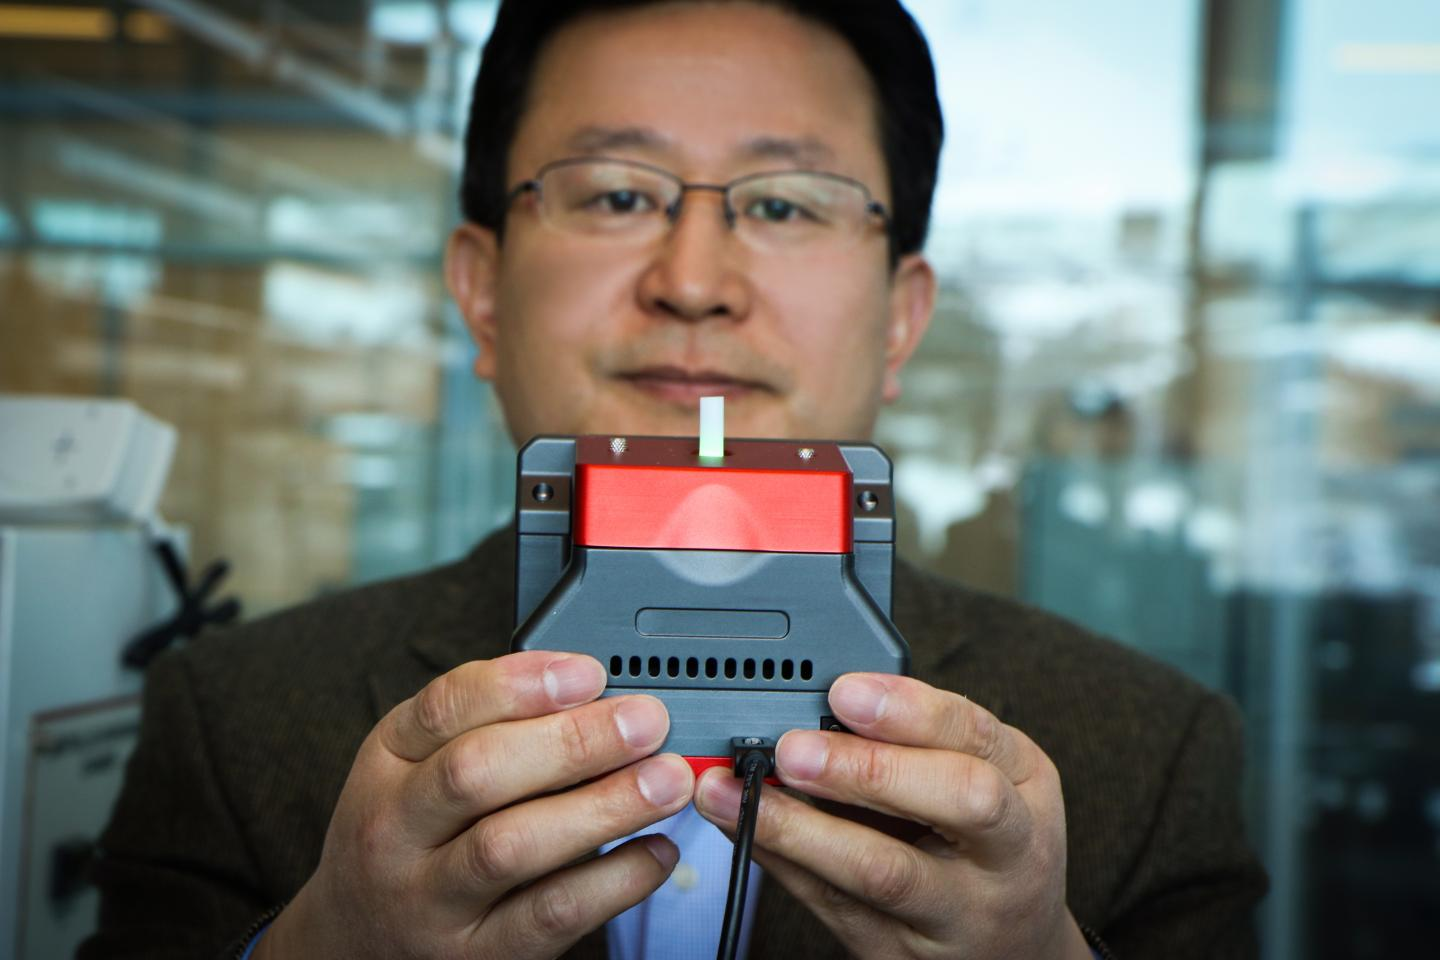 University of Utah materials science and engineering professor Ling Zang holds up a prototype handheld detector his company is producing that can sense explosive materials and toxic gases. Credit: Dan Hixson/University of Utah College of Engineering